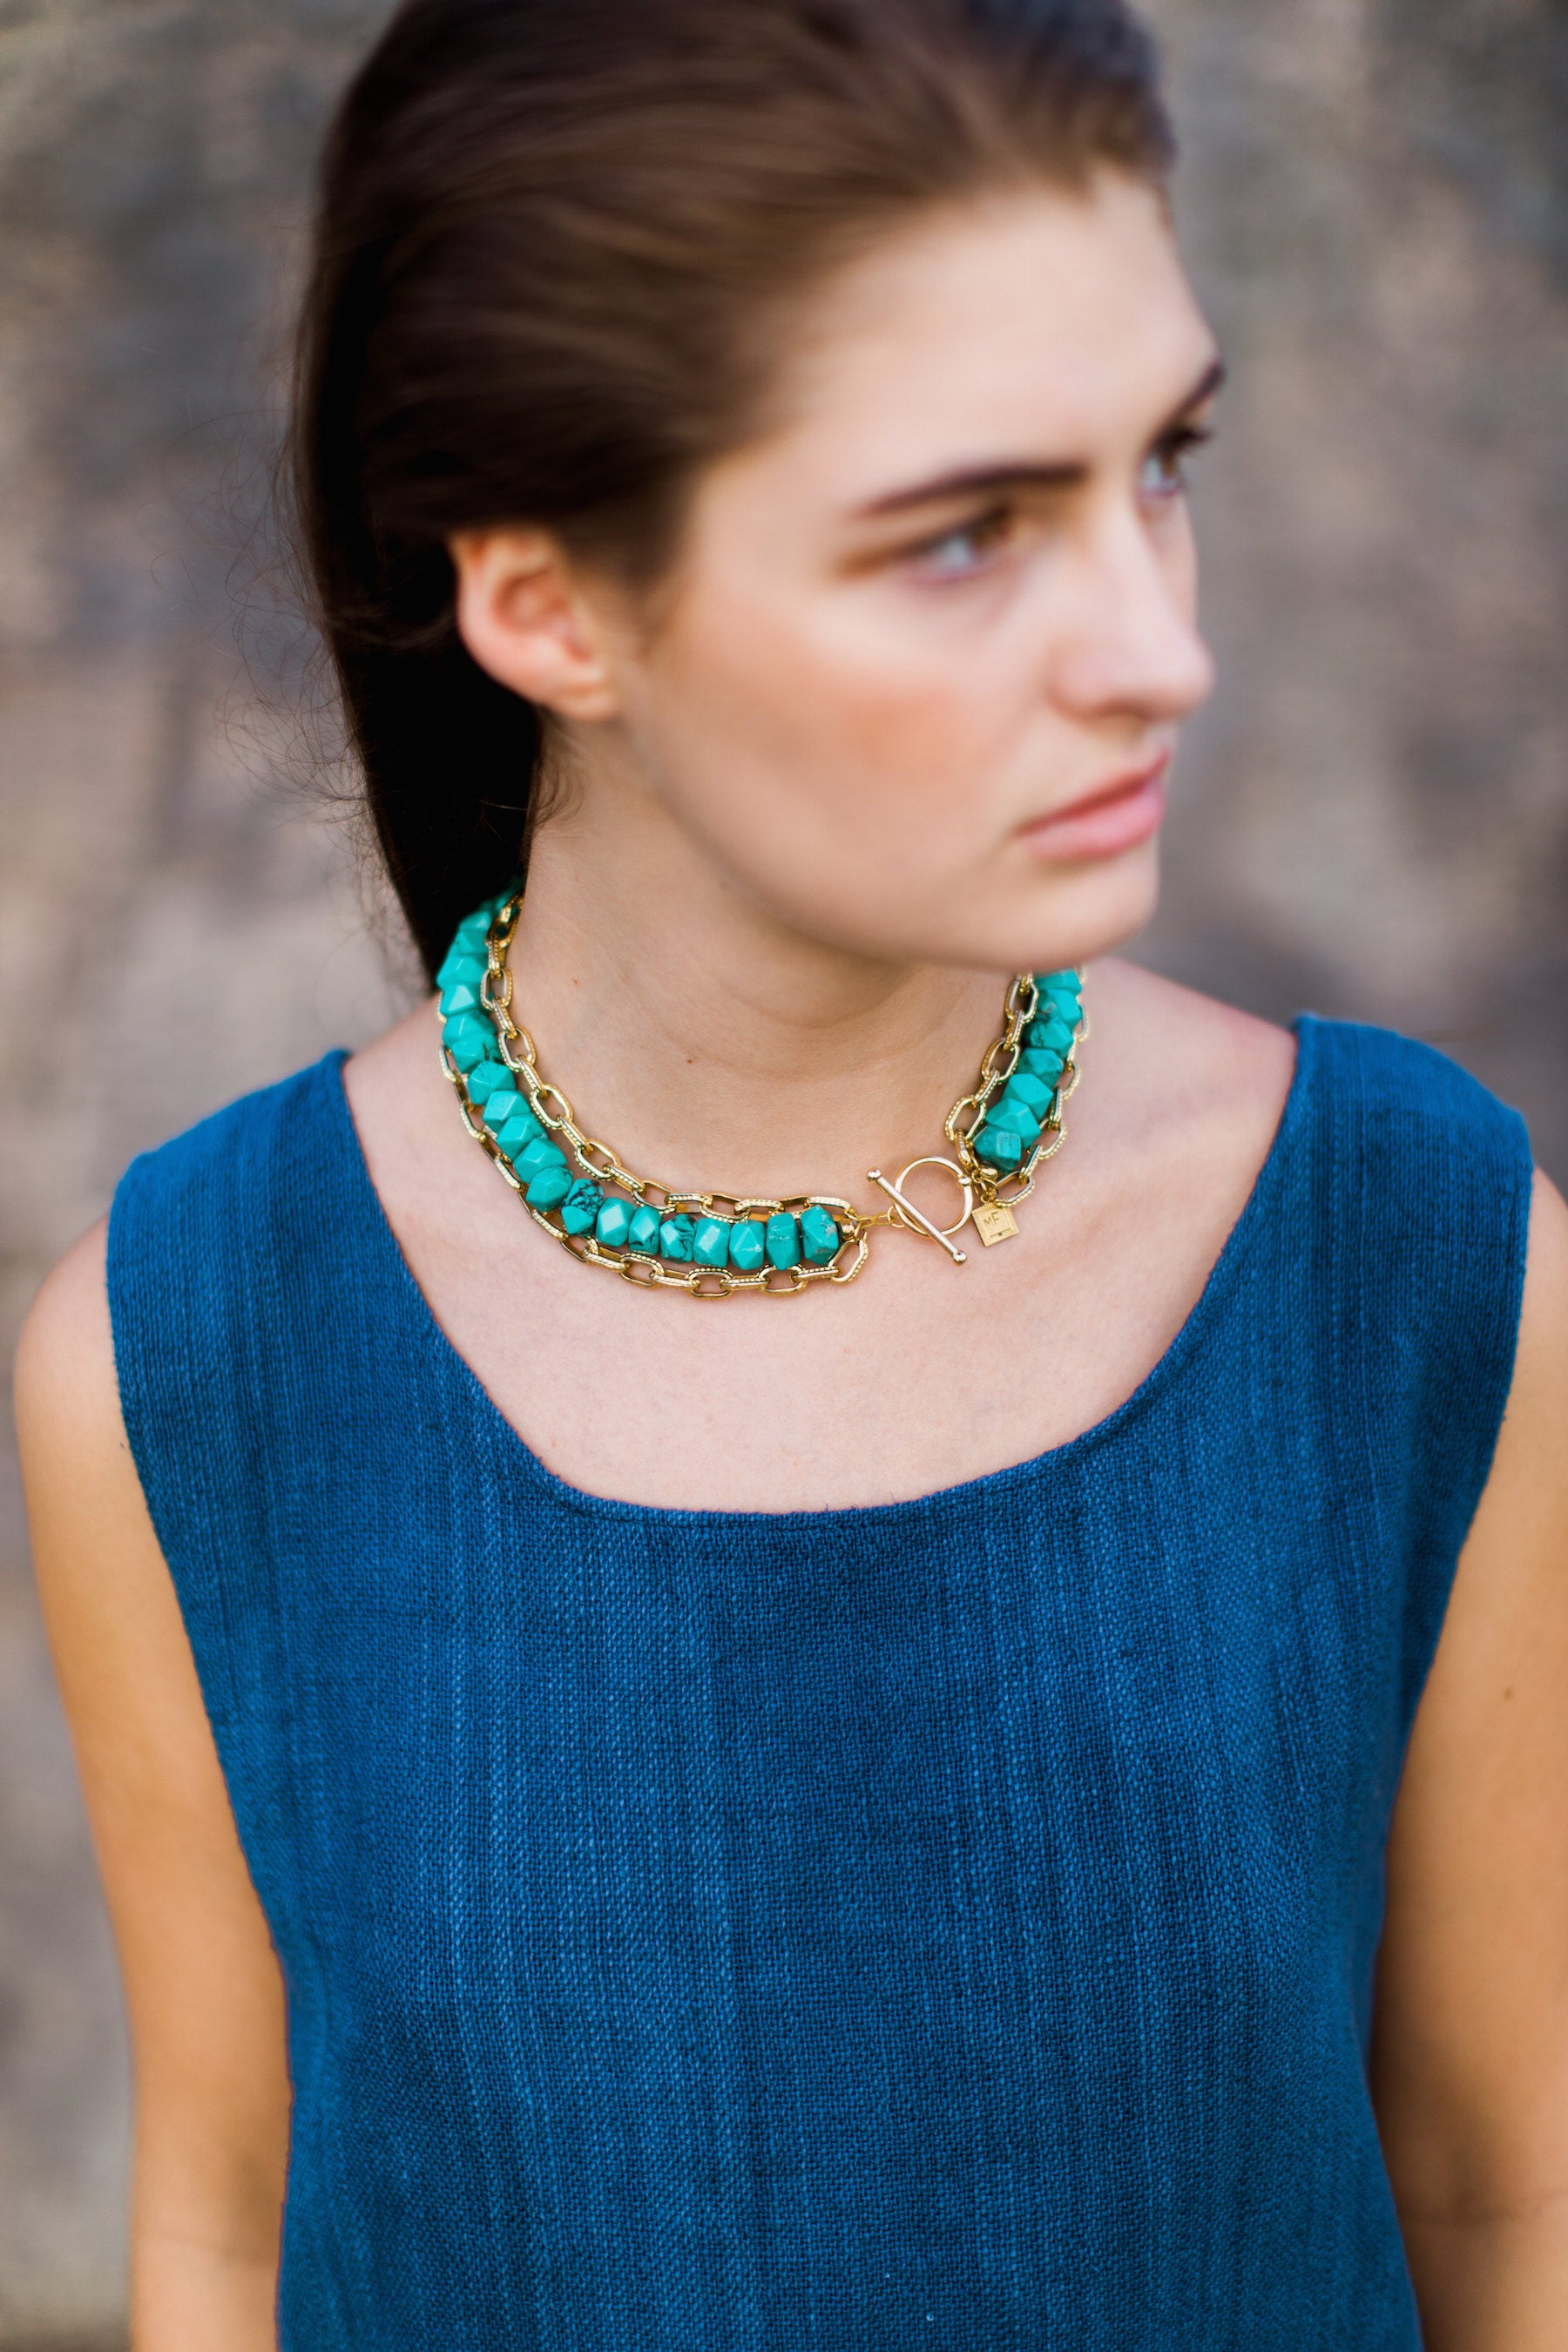 Turquoise & Antique Brass Collar Necklace